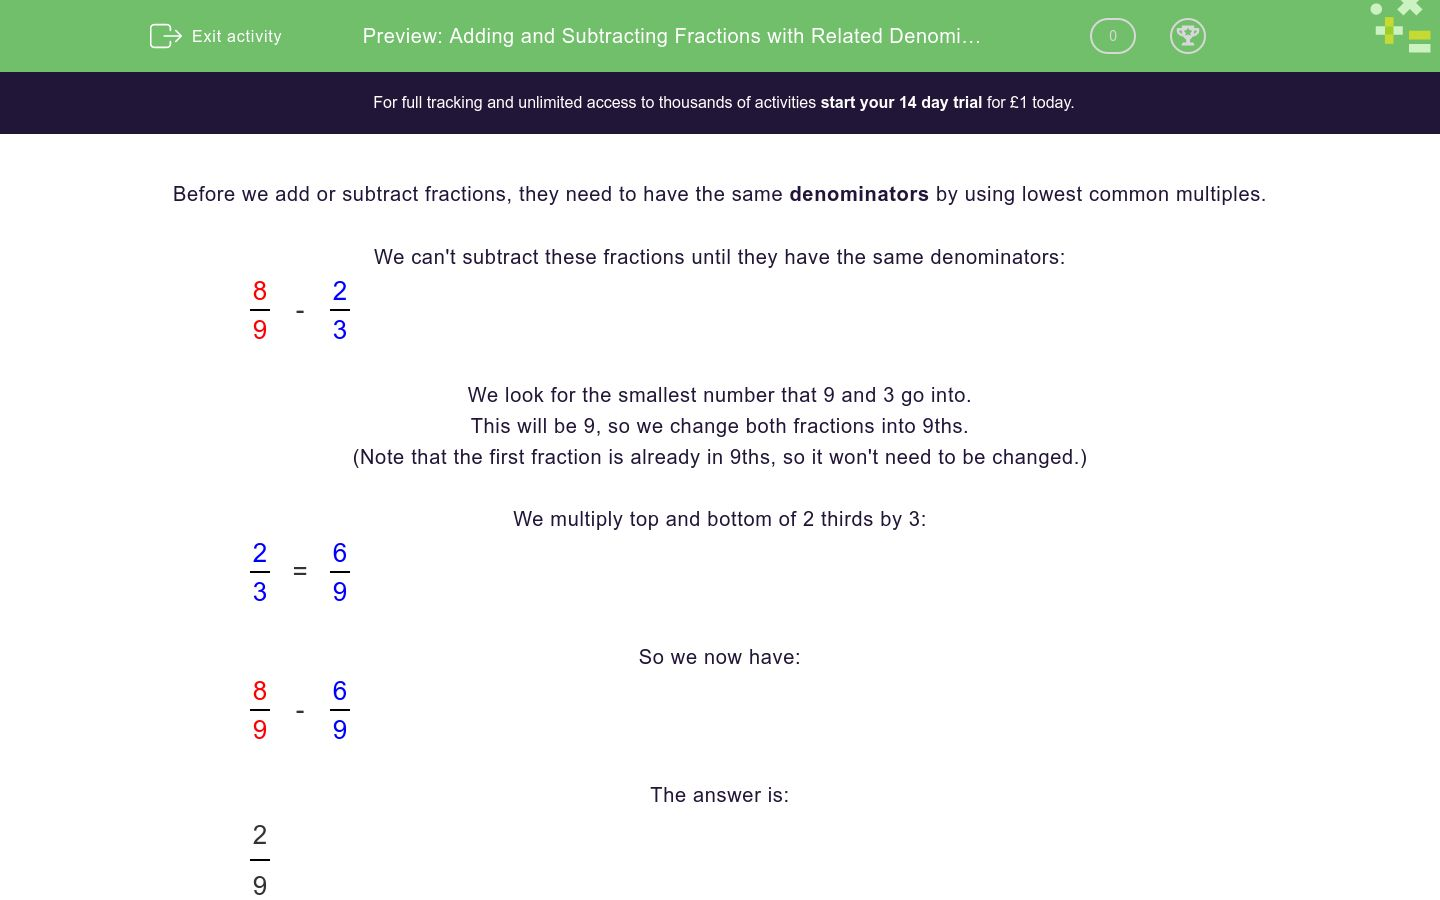 'Adding and Subtracting Fractions with Related Denominators' worksheet